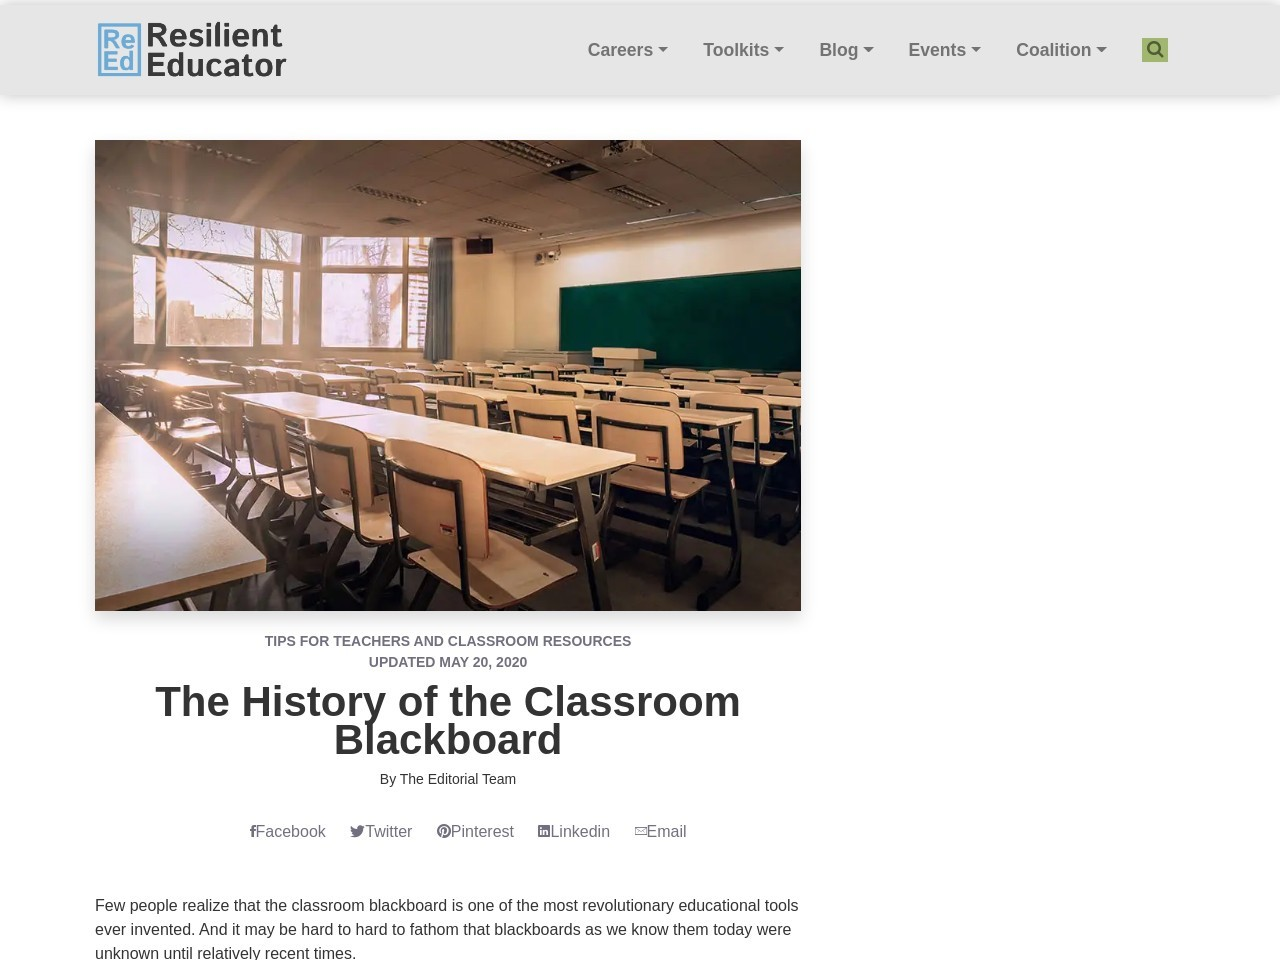 History of the Classroom Blackboard   Resilient Educator